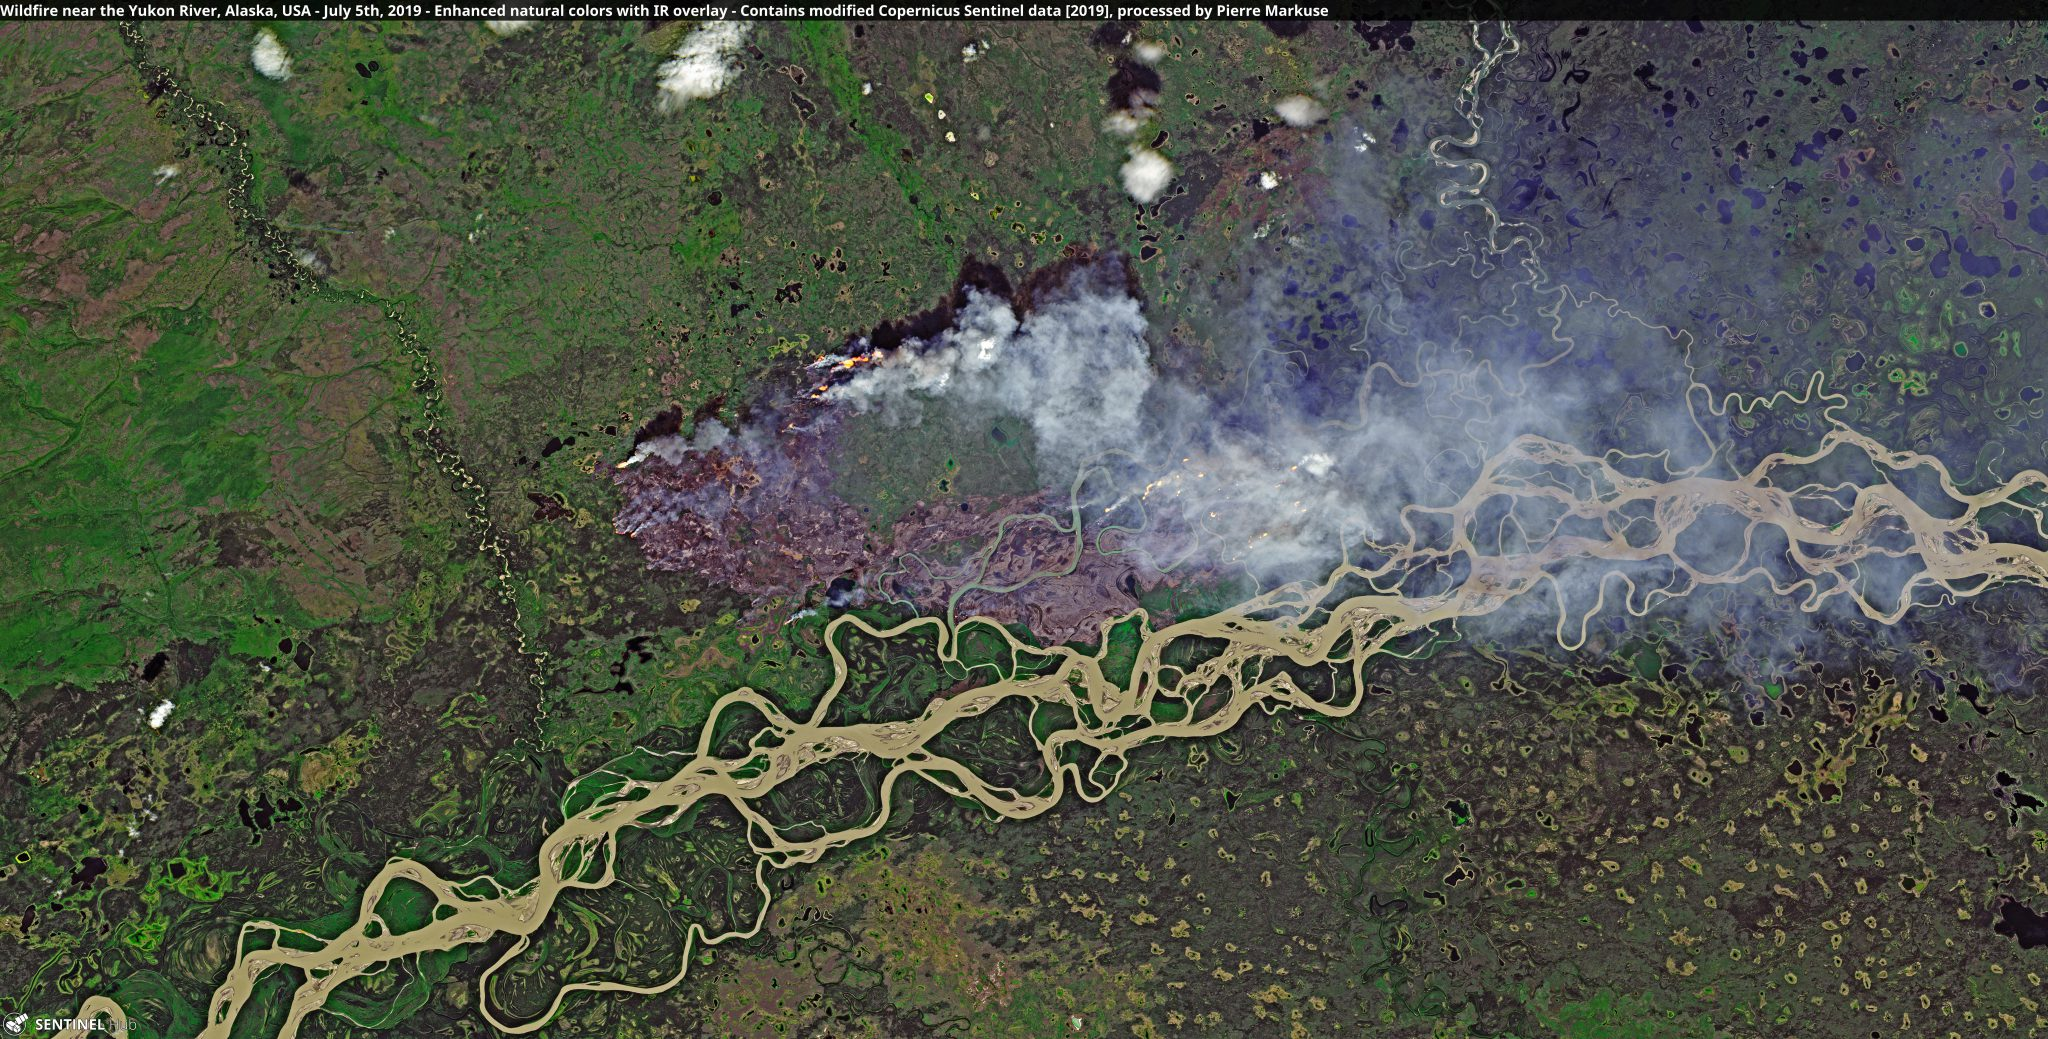 desc:Wildfire near the Yukon River, Alaska, USA Copernicus/Pierre Markuse